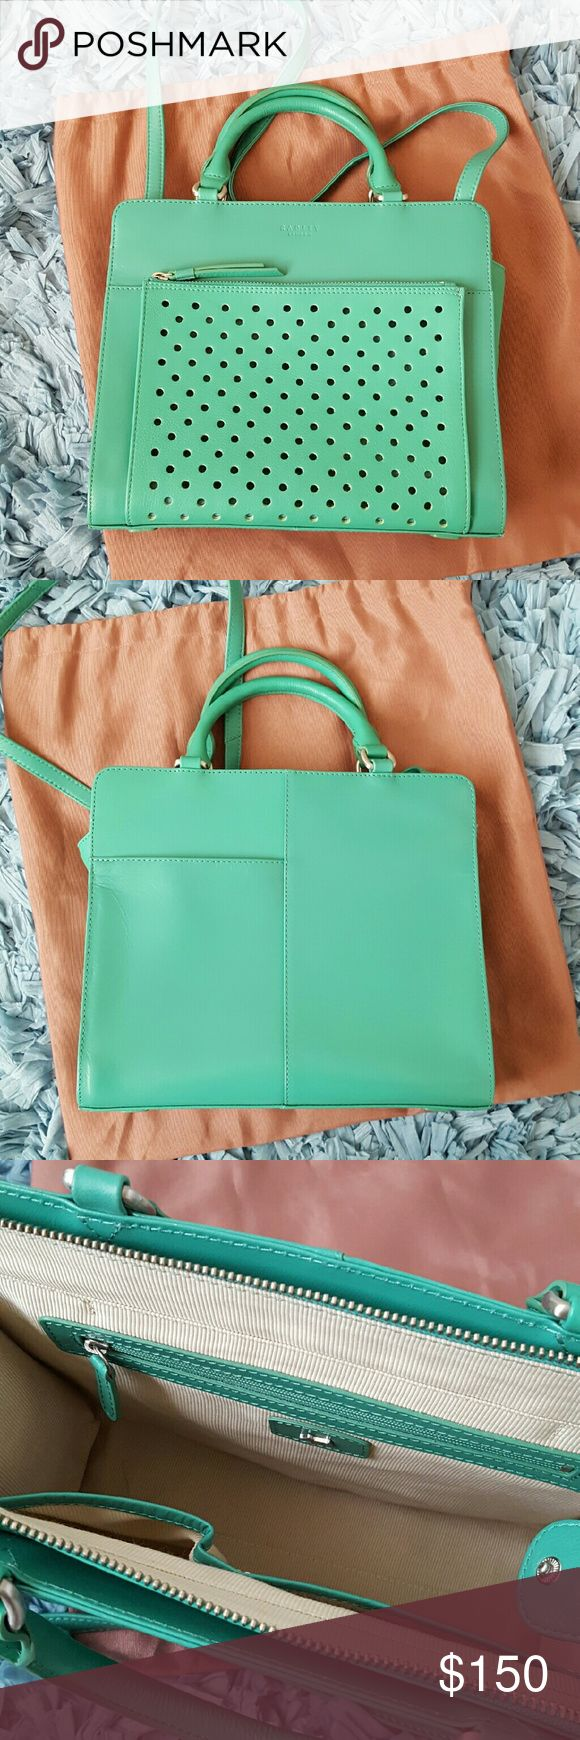 "Radley London Multi-way Bag This Kelly Green bag features grab handles and longer shoulder strap (not attachable or adjustable), exterior slip pocket and perforated zipper pocket, main zipper closure with interior zipper pocket and 2 slip pockets. Leather outer with fabric interior. Pre-loved and in excellent condition. This brand of bag is made to last. Grab handle drop is approximately 4.25"" and strap drop is approximately 17"". Dimensions are approximately 9.5"" x 11"" x 4"". Radley London…"